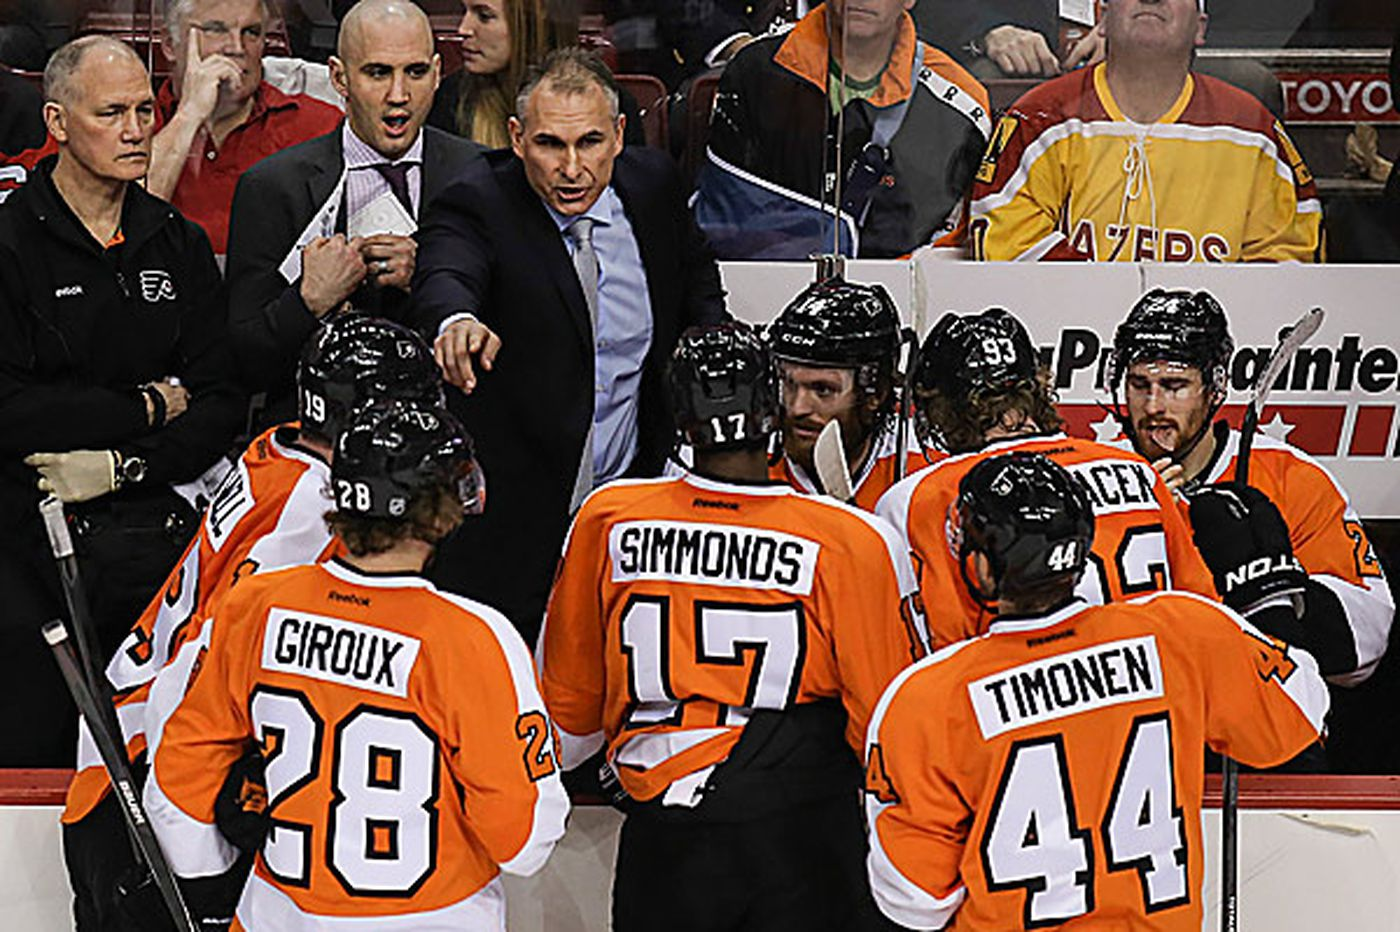 Flyers have responded to Berube's blunt approach